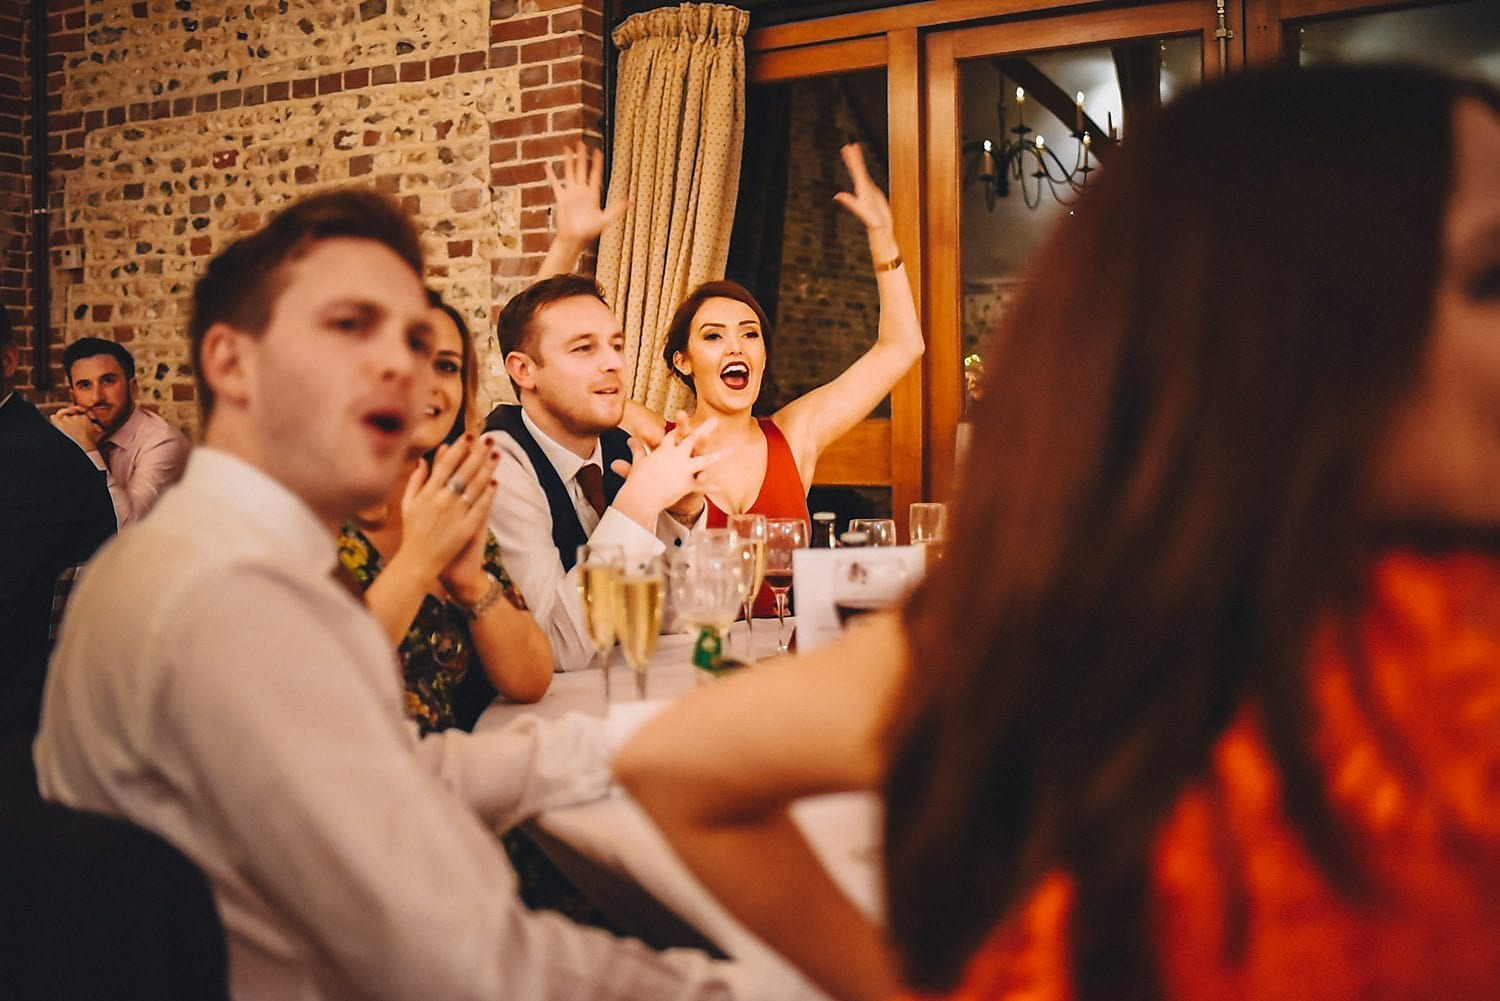 Guests applaud and wave their arms during the speeches. Woop woop!